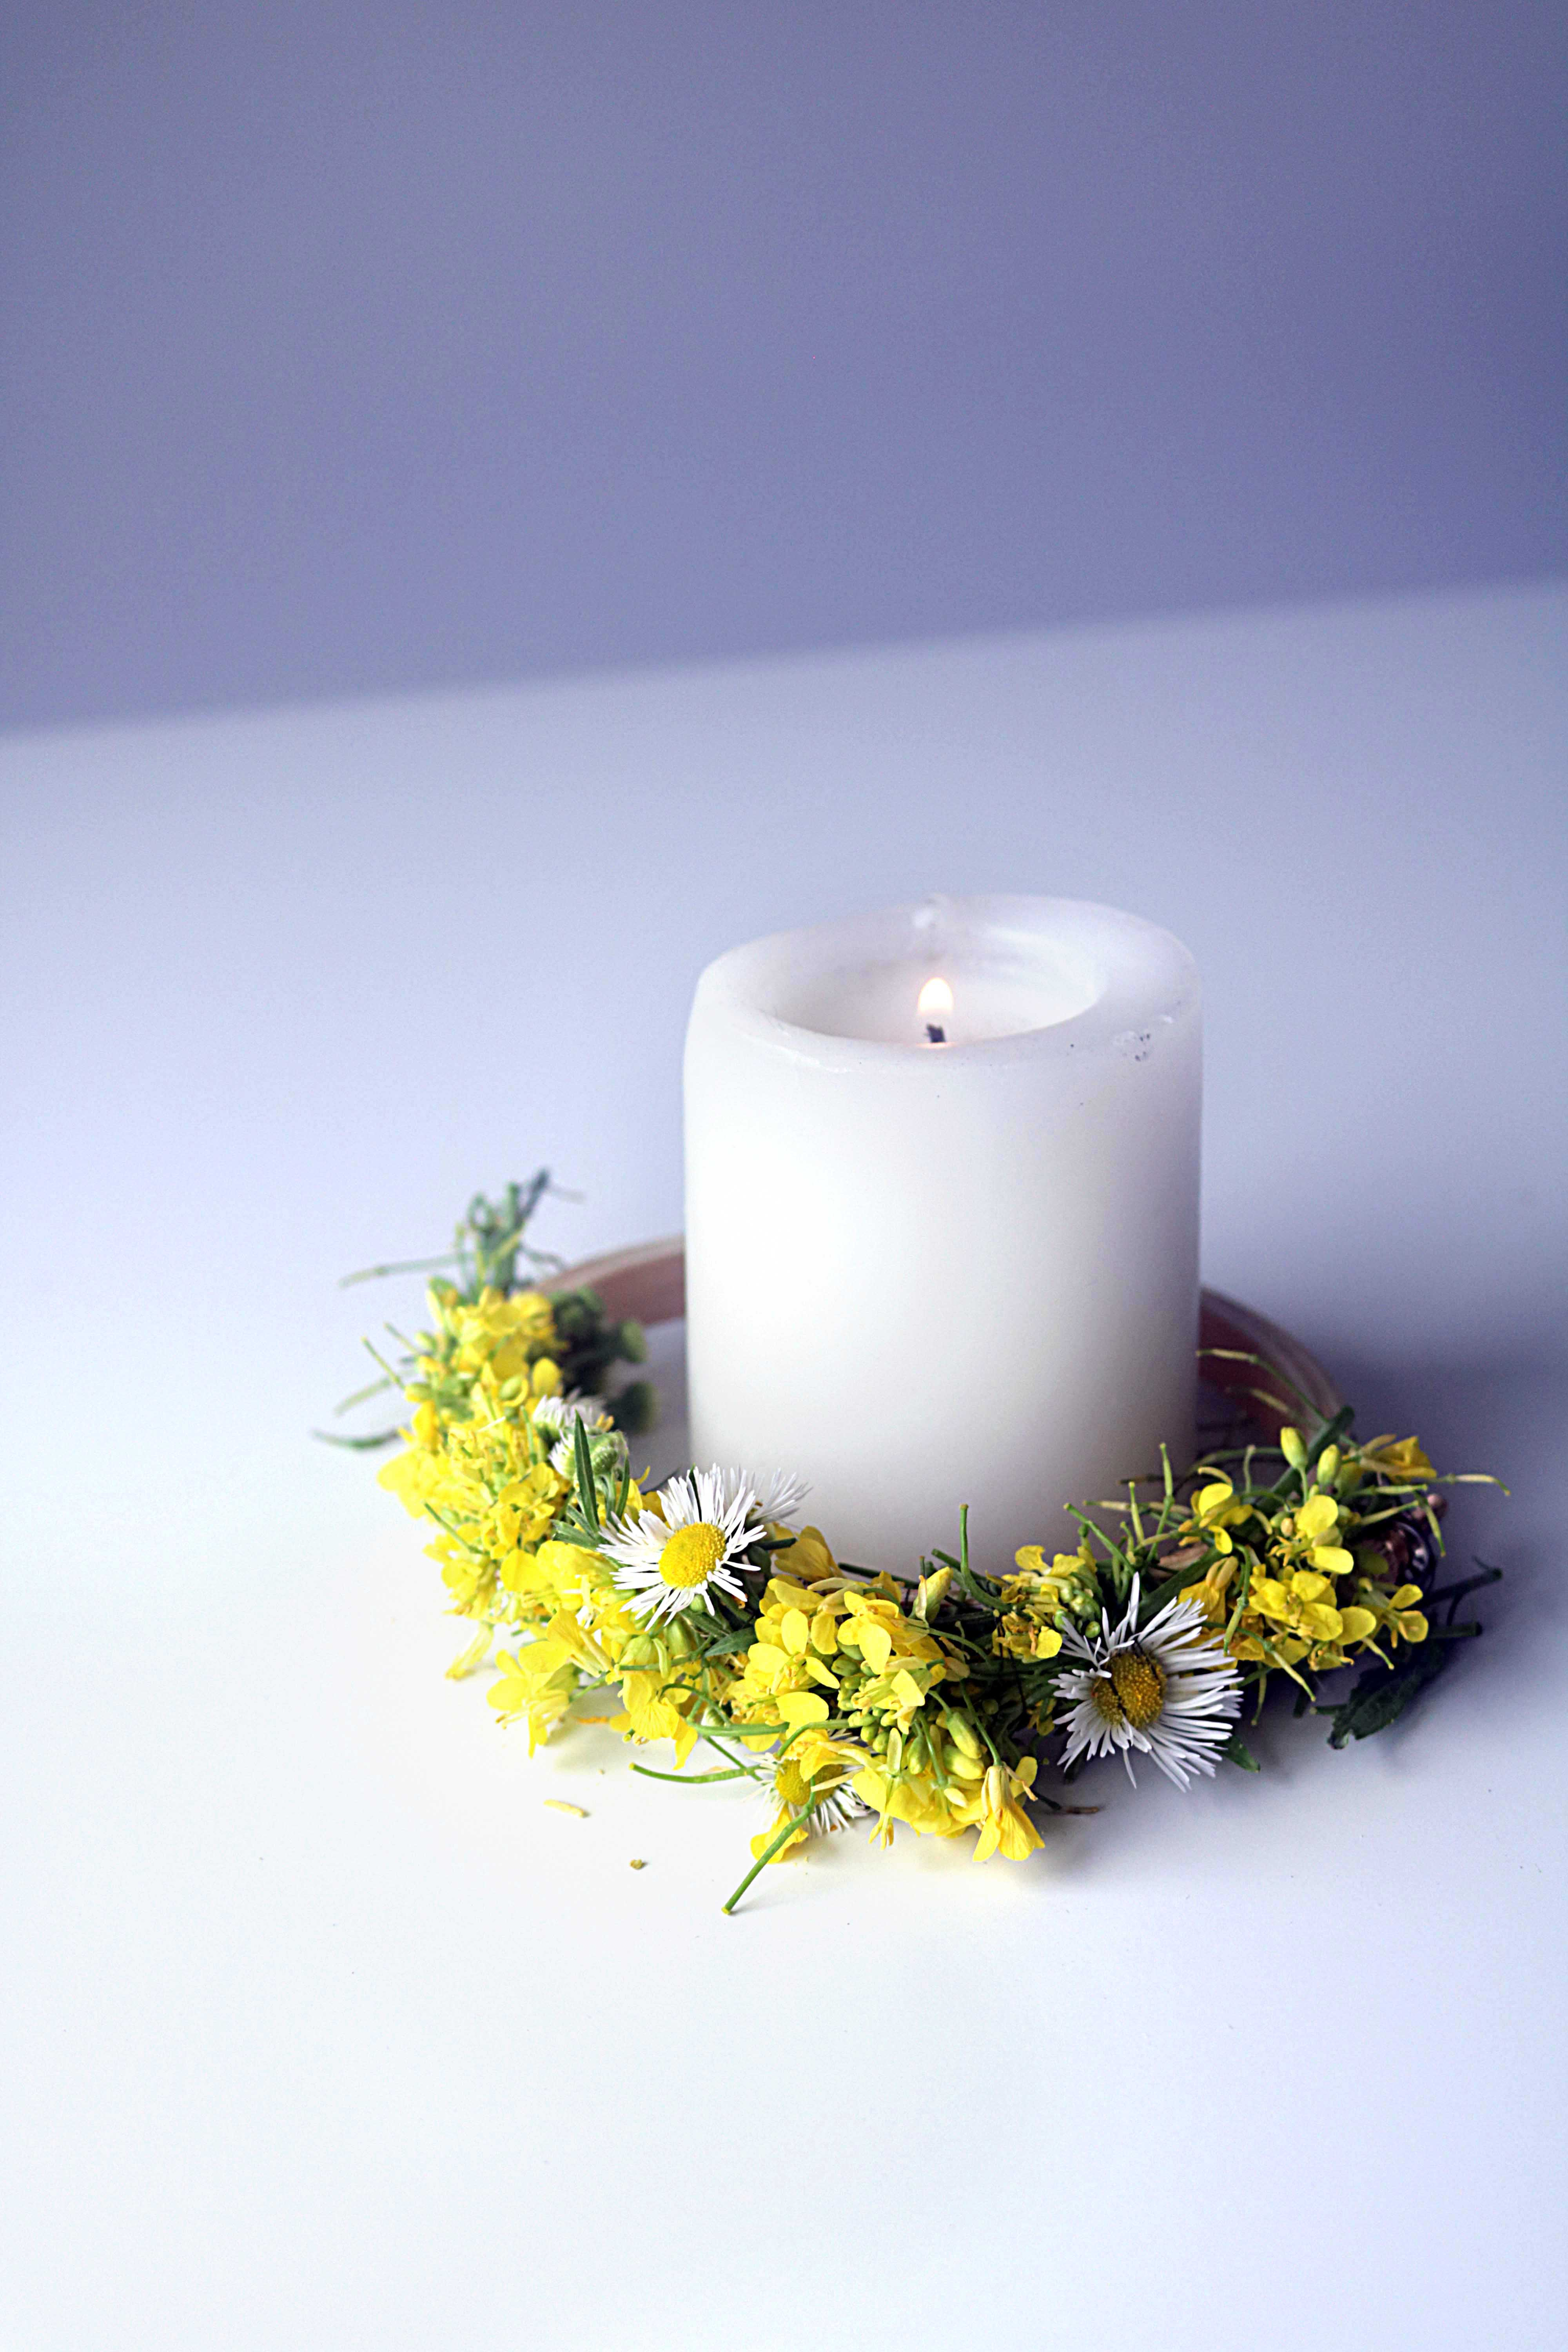 Simple ideas to use a white candle in witchcraft, magic and spells.